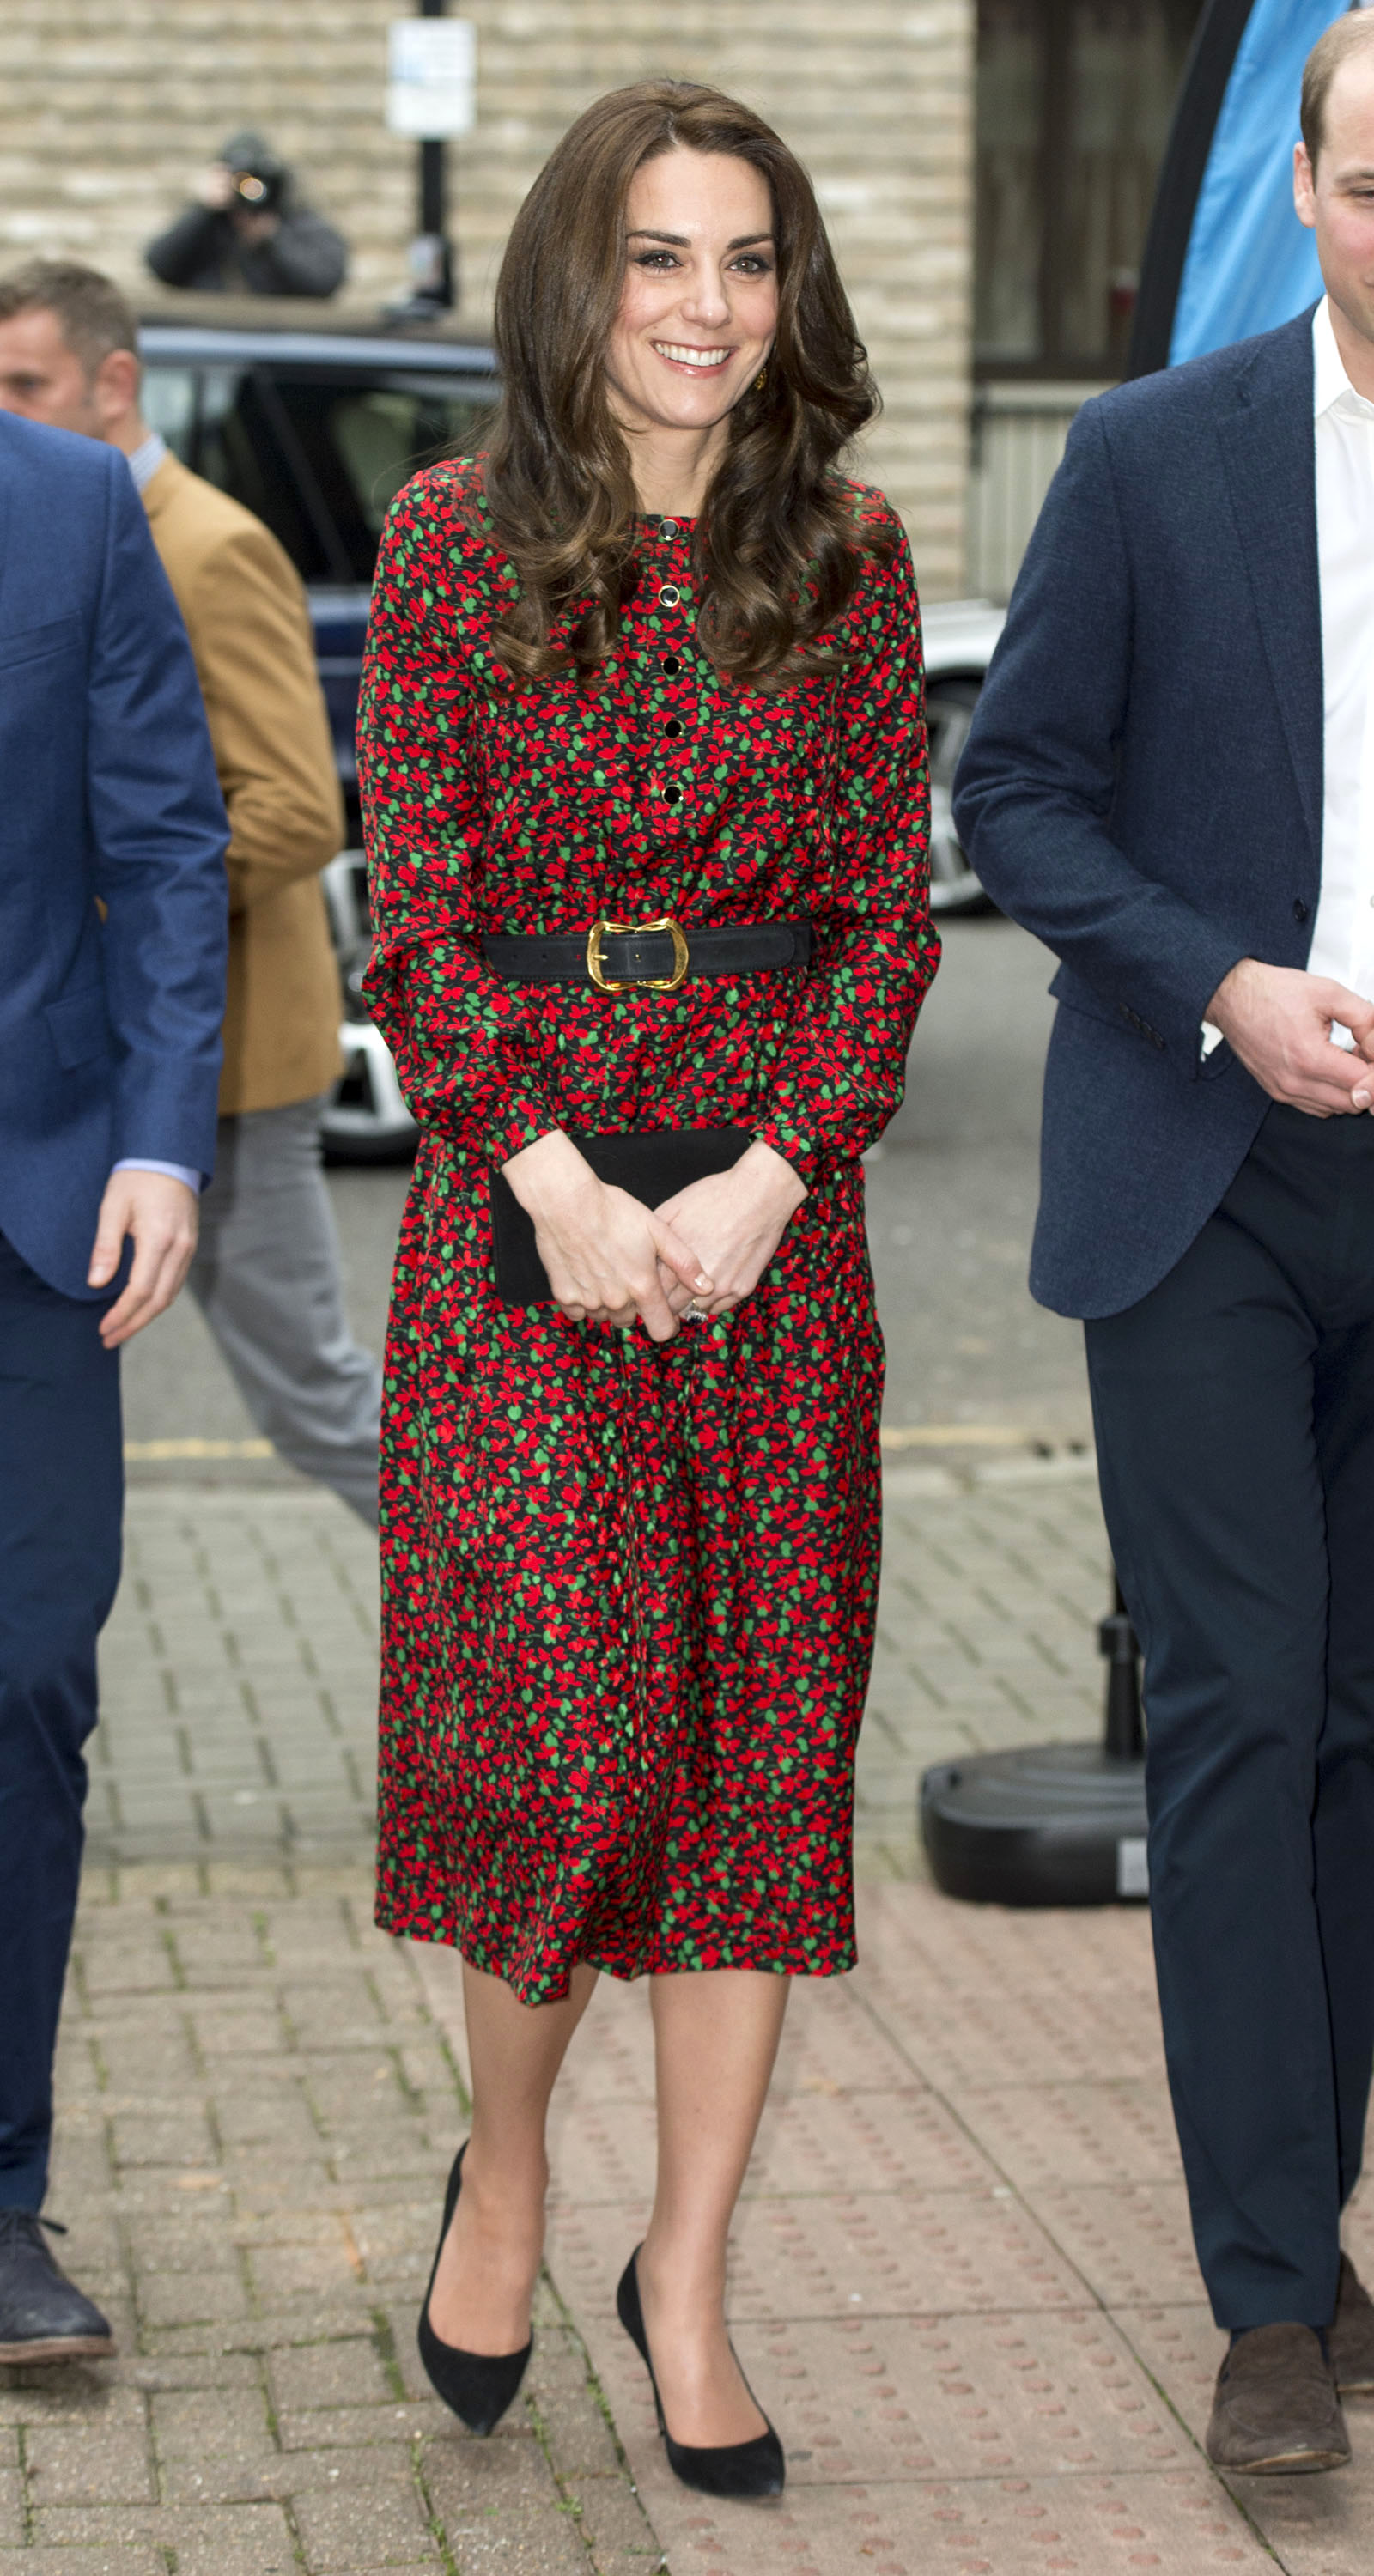 Kate Middleton 39 S Best Style Moments The Duchess Of Cambridge 39 S Most Fashionable Outfits